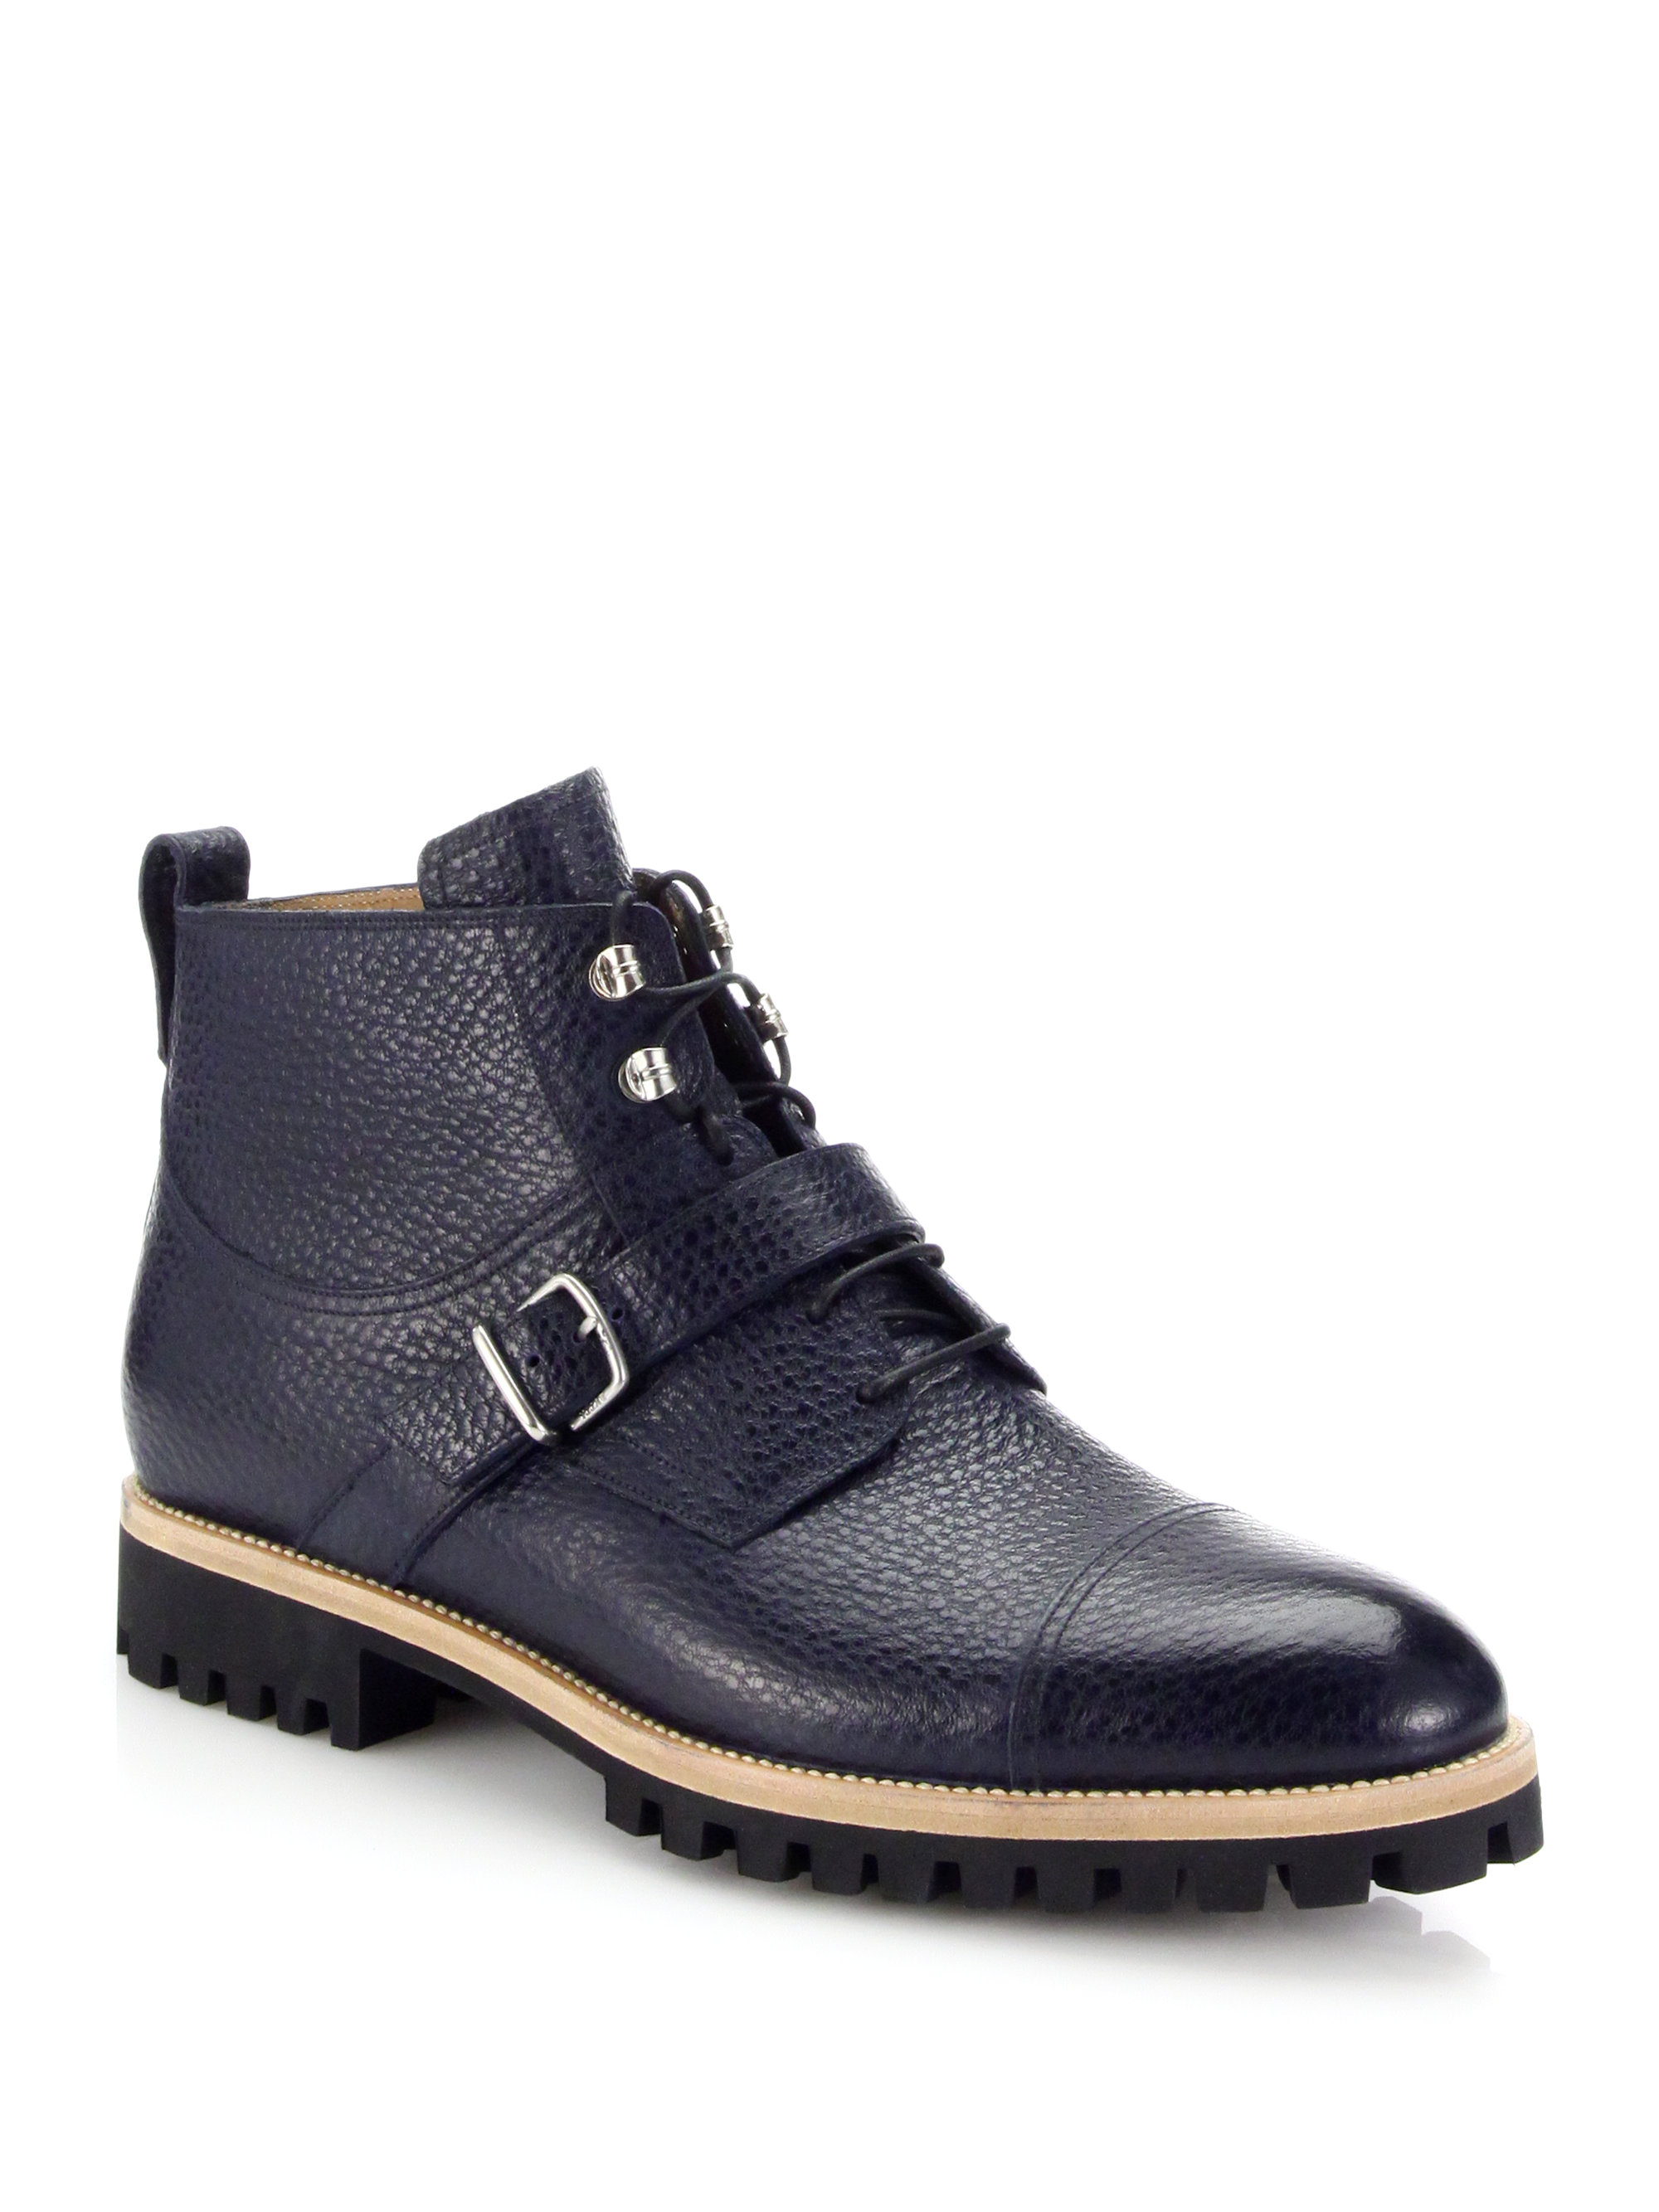 Lyst Bally Portland Pebbled Leather Lace Up Boots In